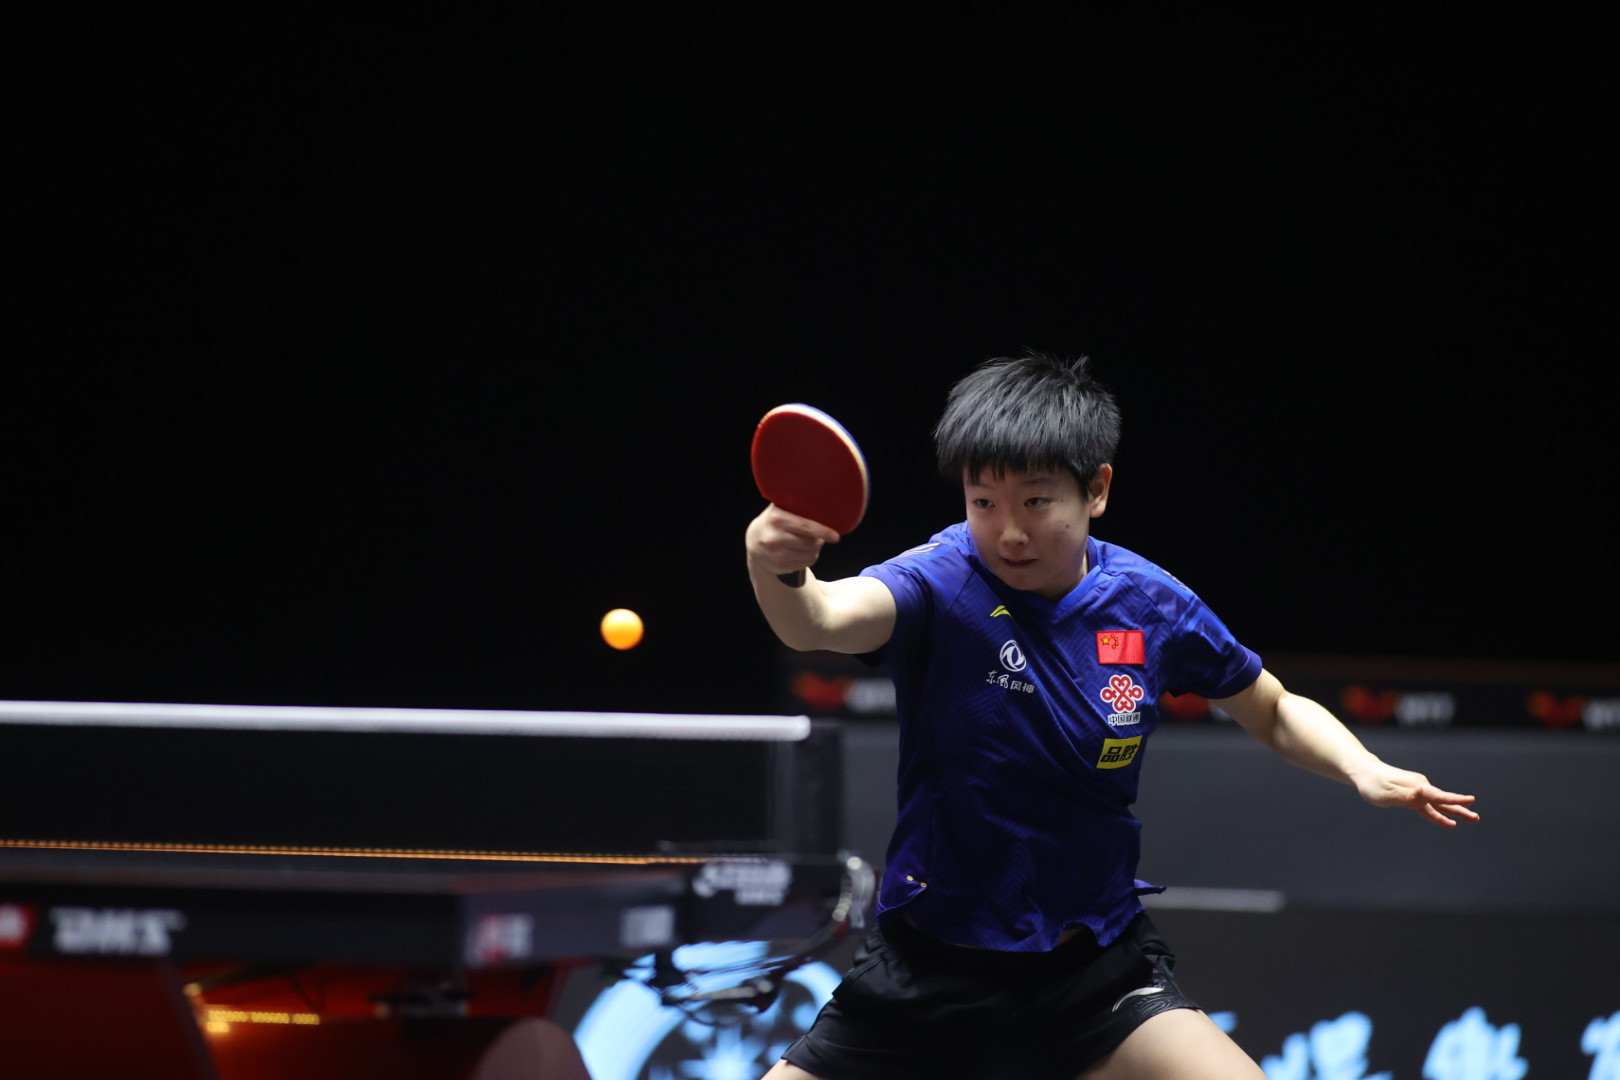 Sun and Ma win finals at World Table Tennis Macao showcase